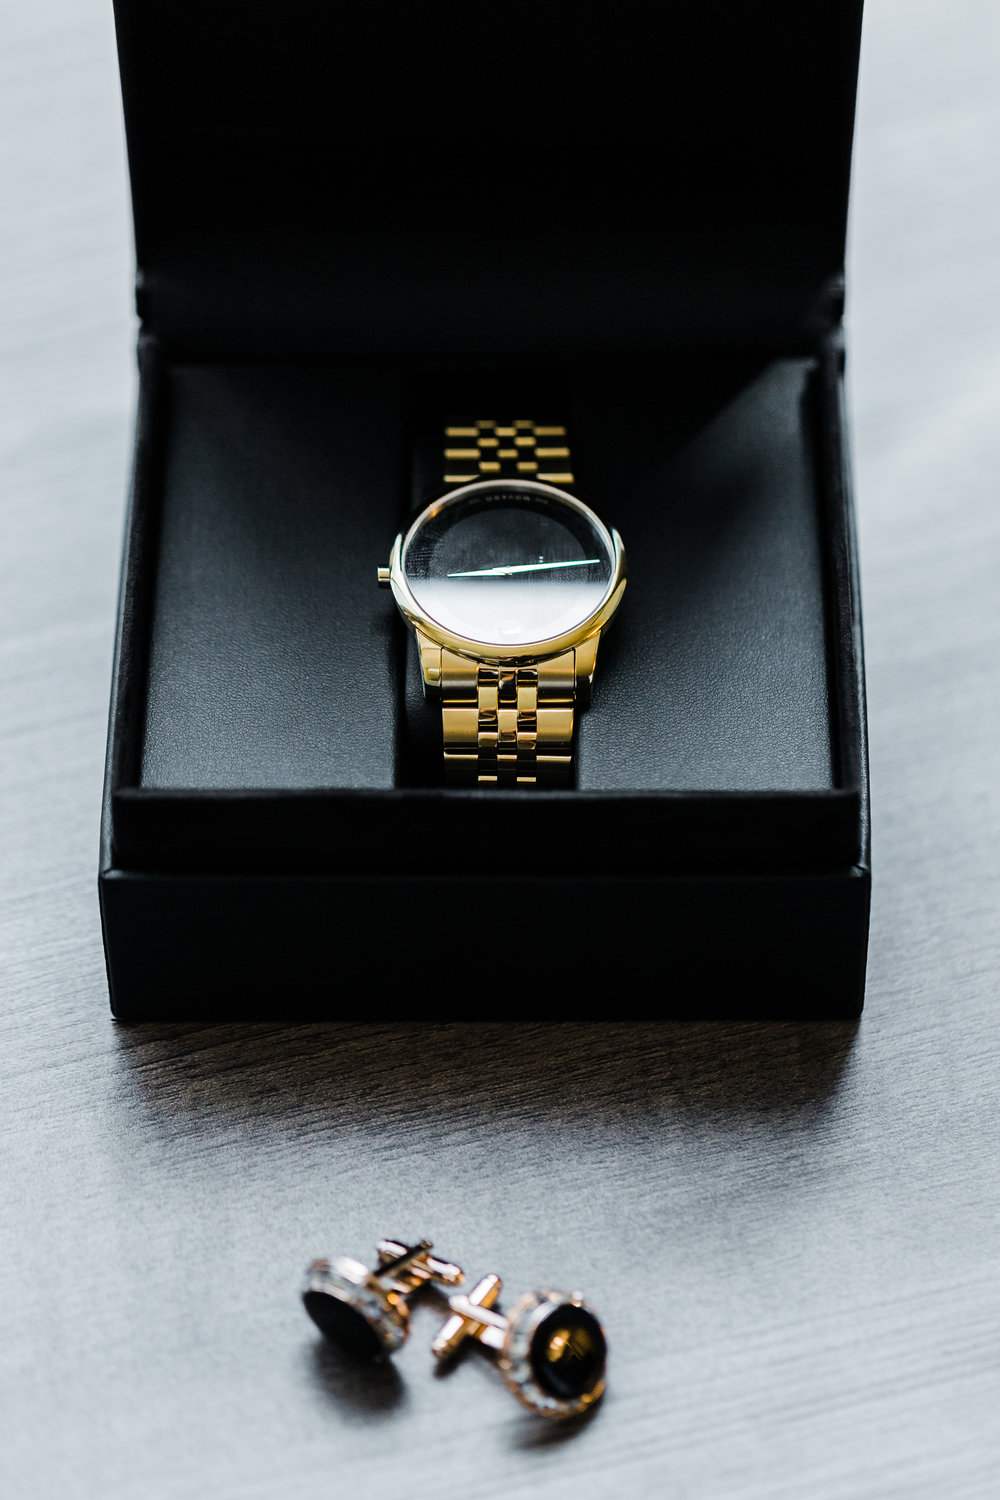 groom's watch, gift from bride, wedding day baltimore maryland